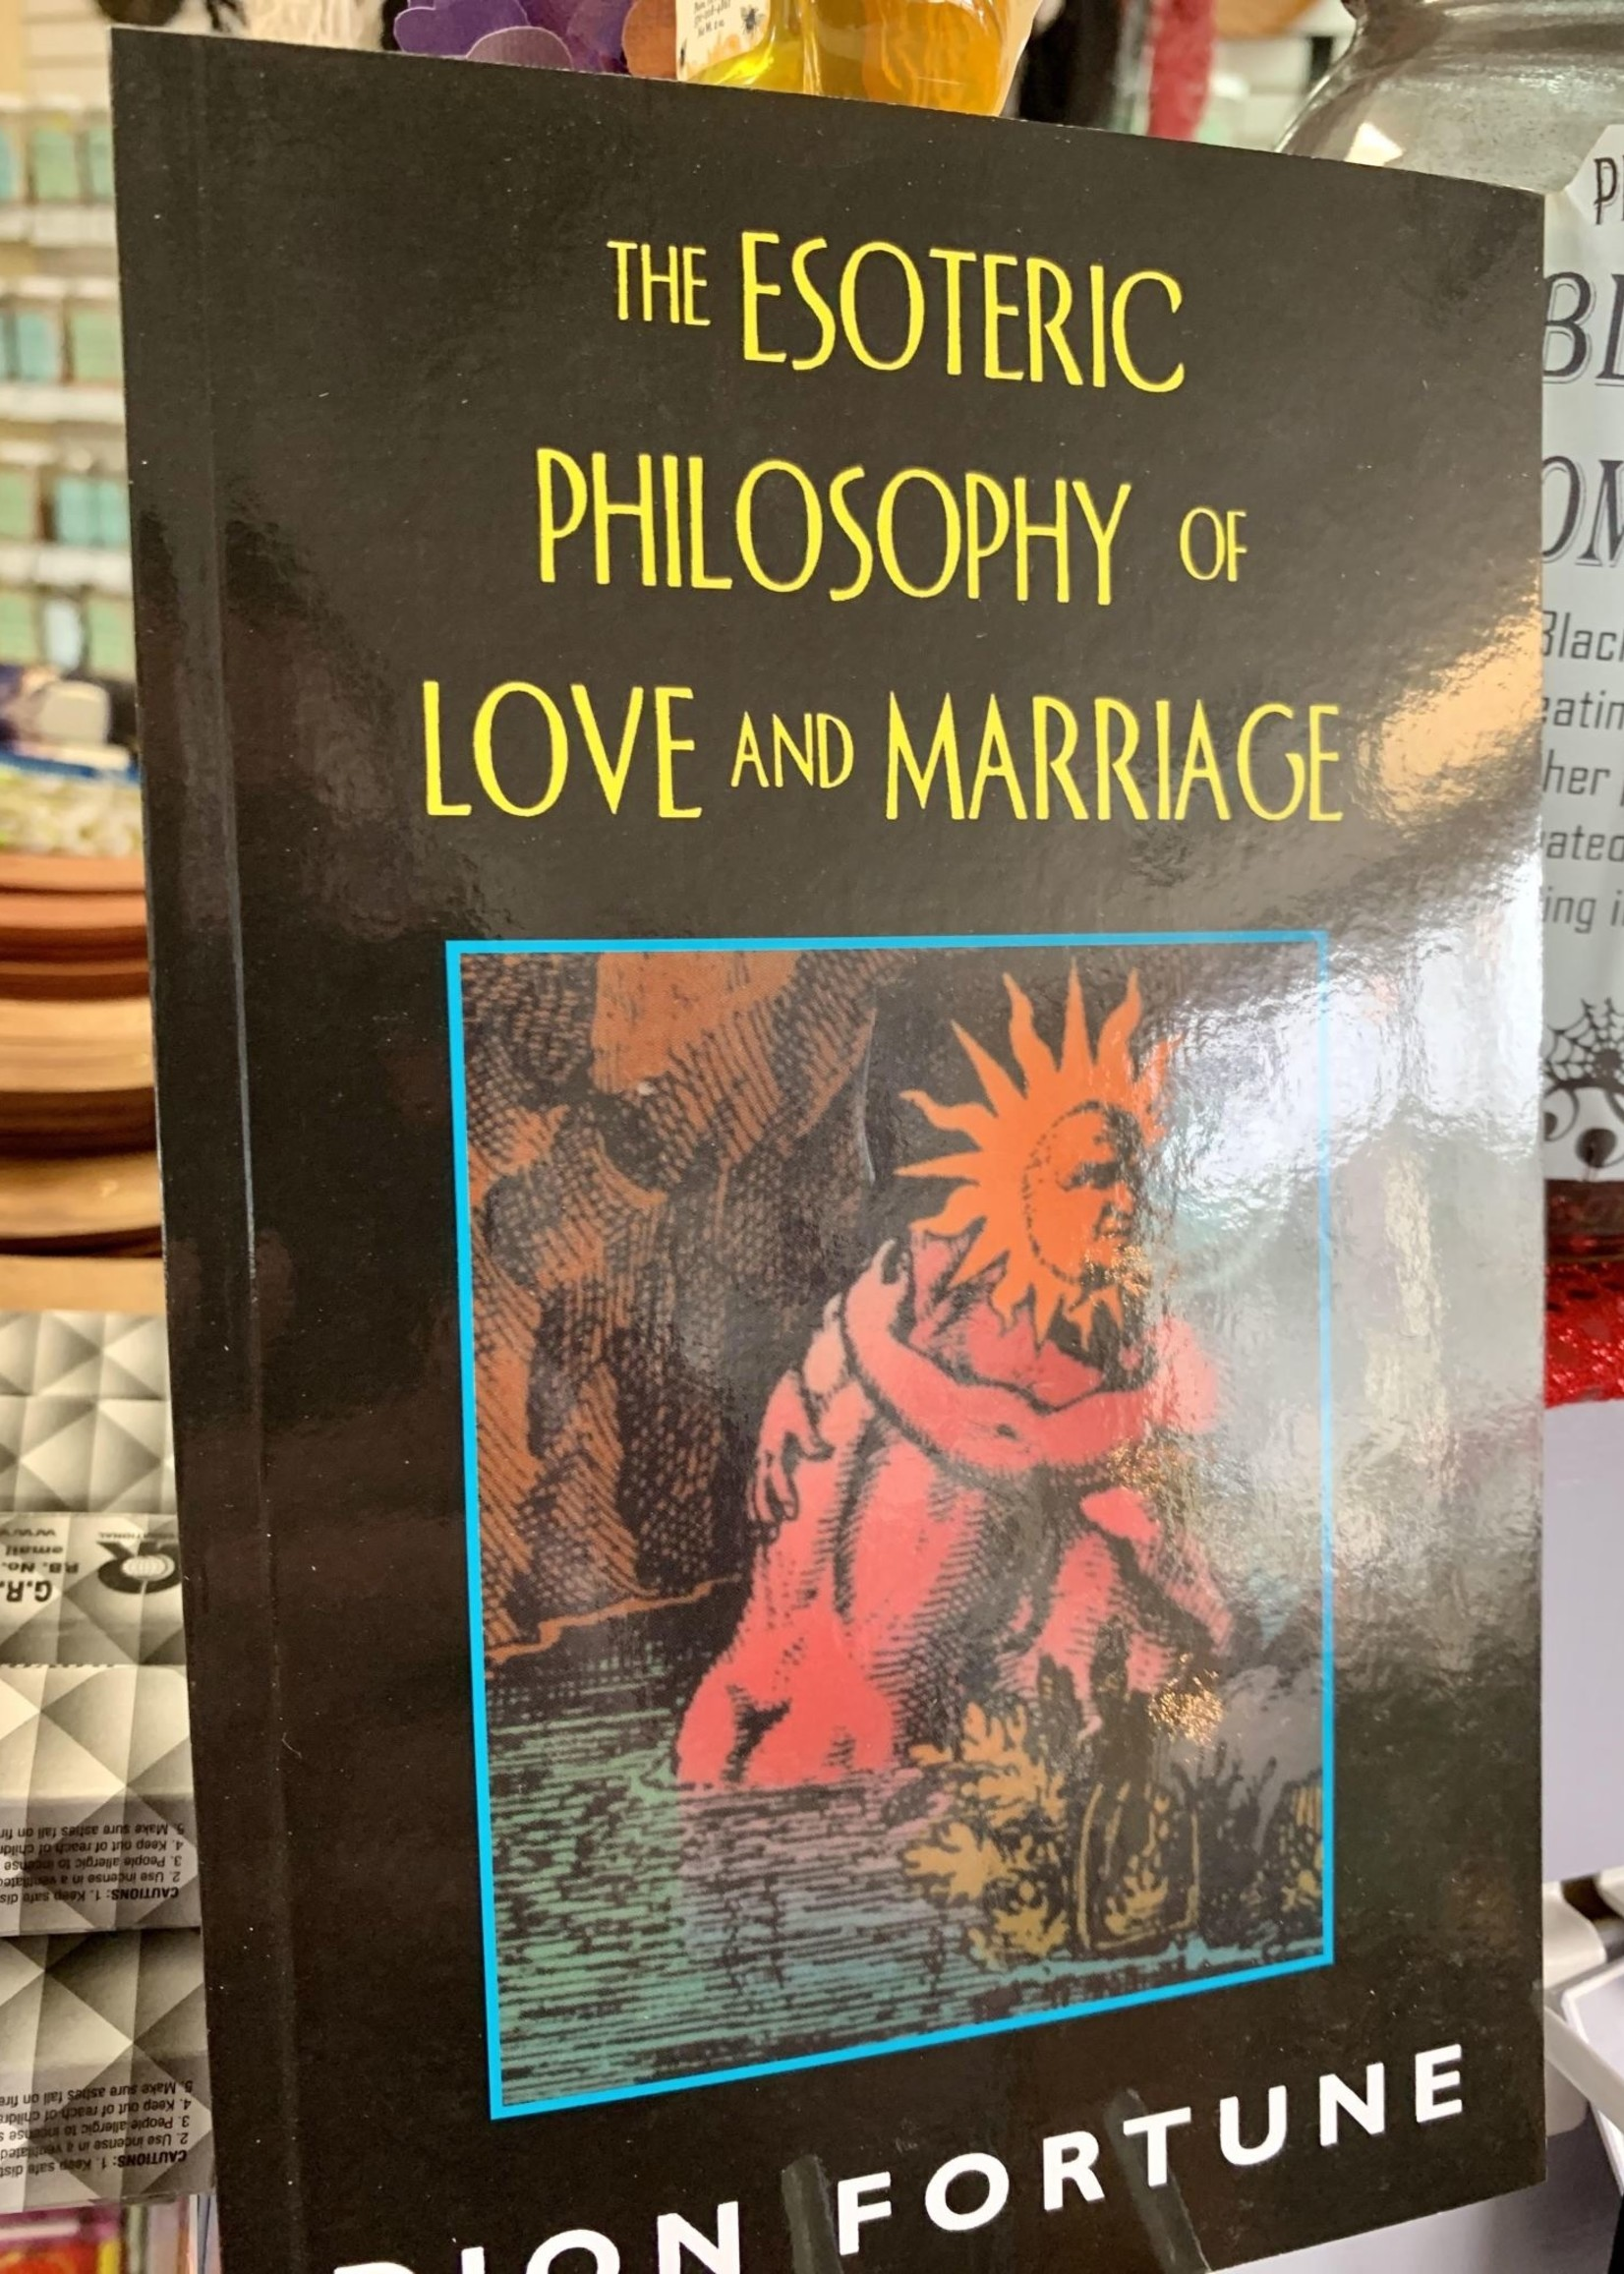 The Esoteric Philosophy of Love and Marriage - Dion Fortune